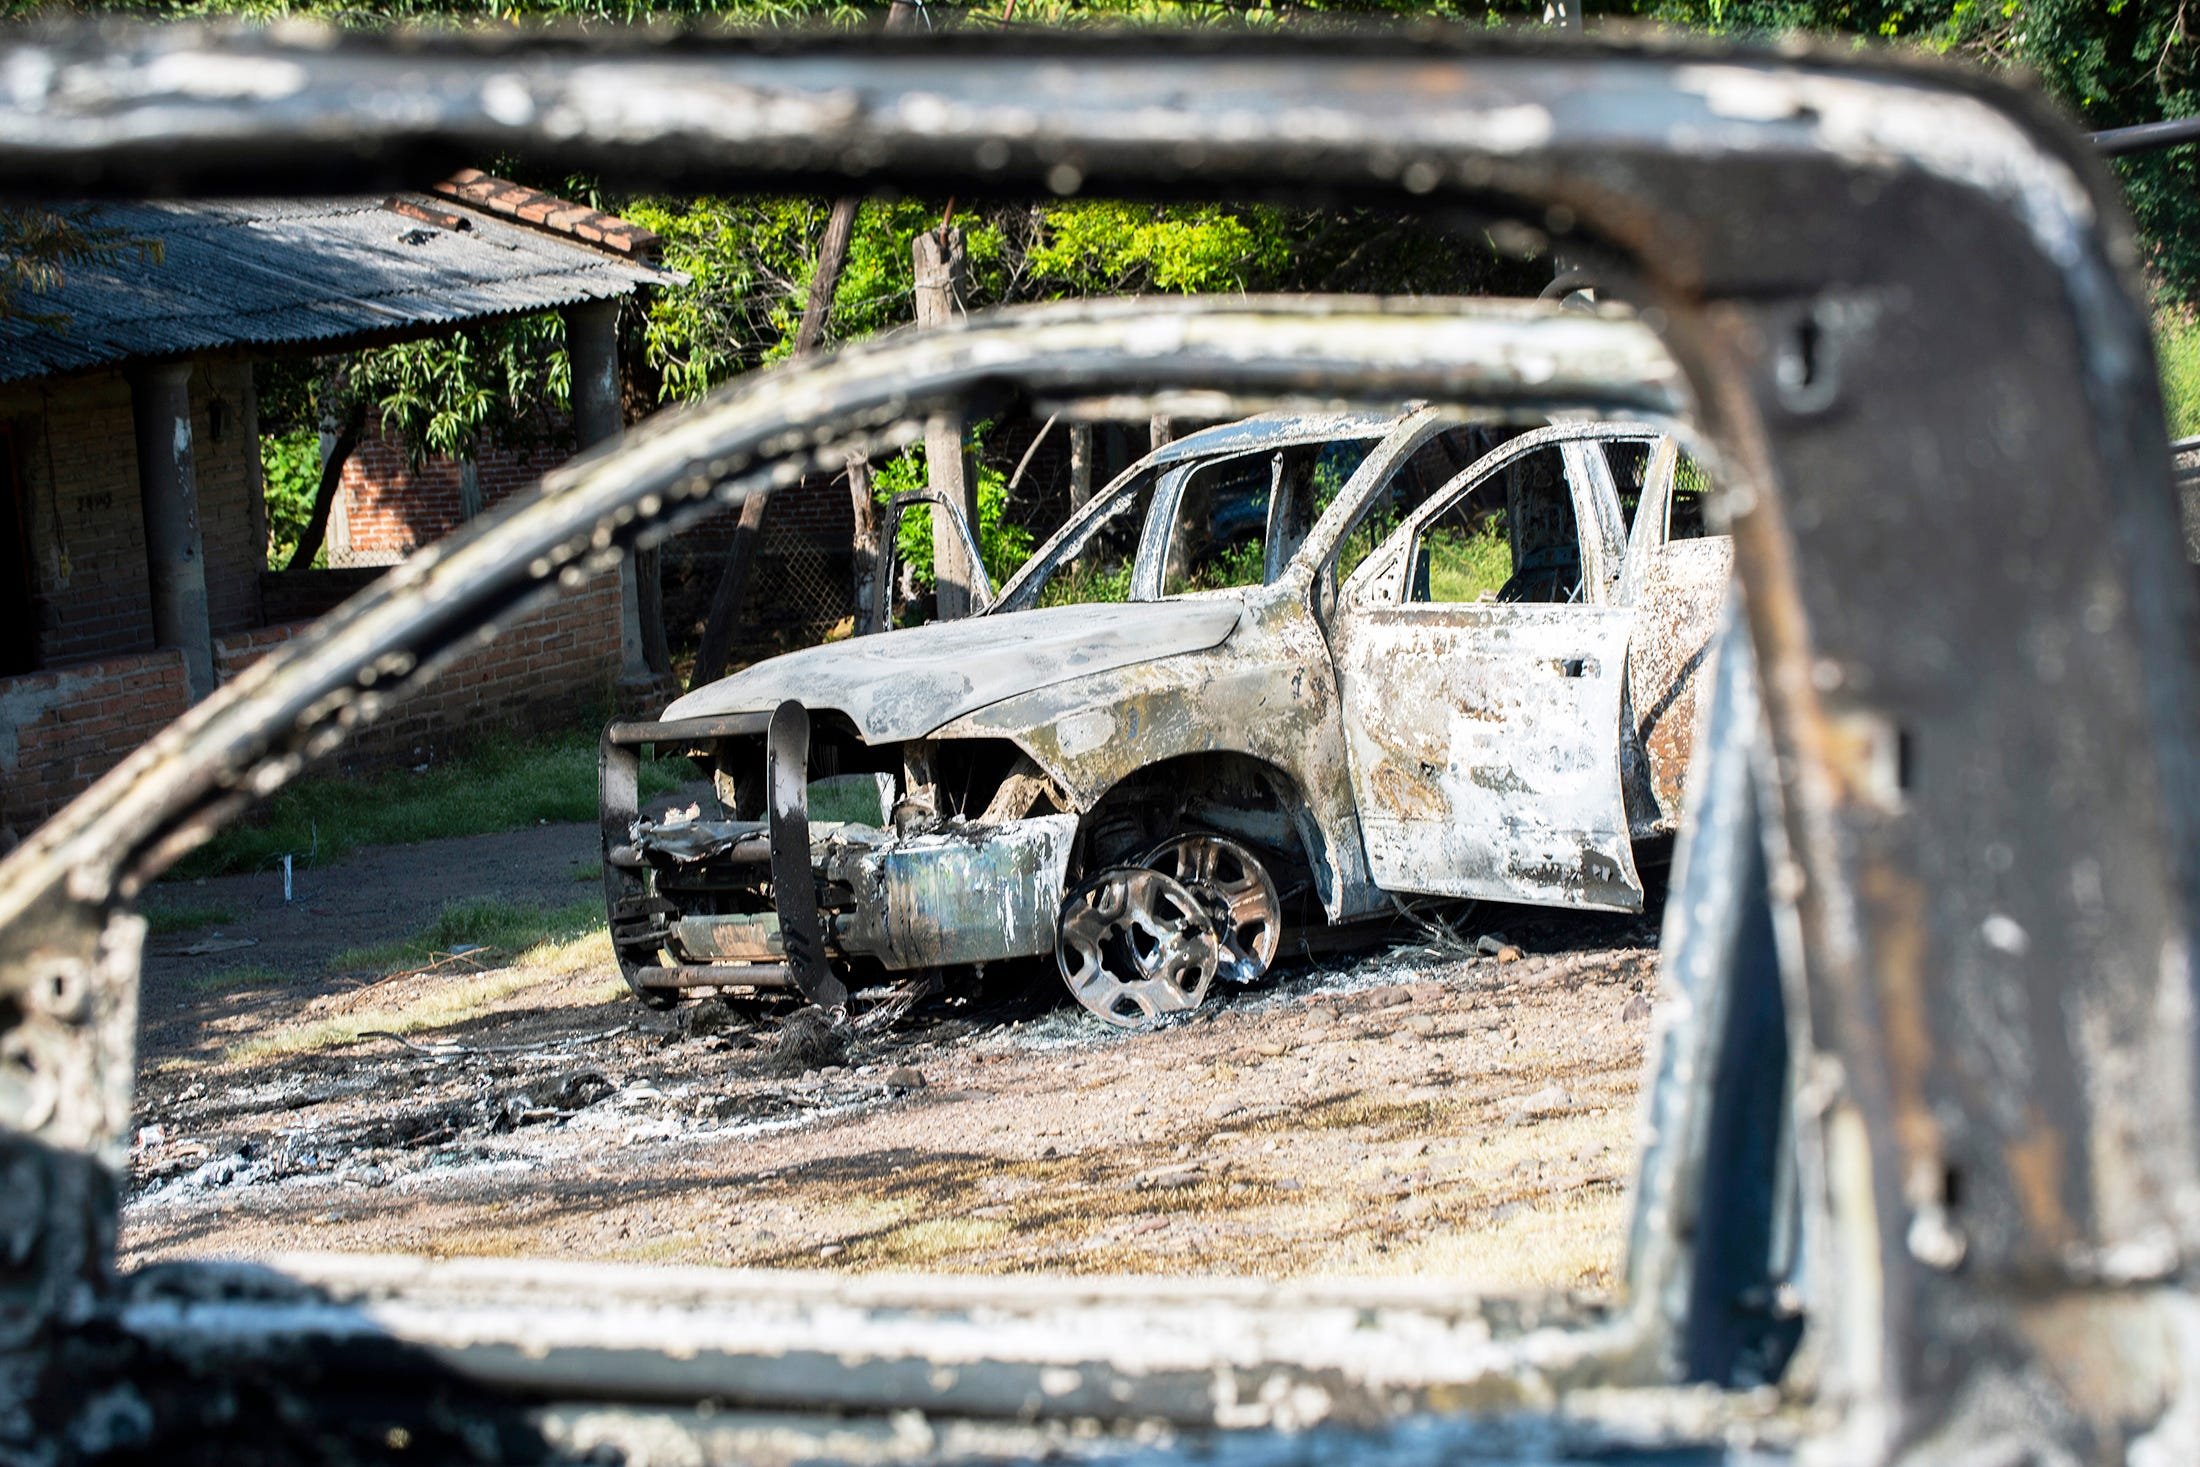 Gunmen opened fire on police, killing 13 officers in an ambush in the community of Aguililla, in the Mexican state of Michoacán, on Oct. 14, 2019. Cartel members also torched at least two patrol cars in the ensuing chaos and left signs with threatening messages.